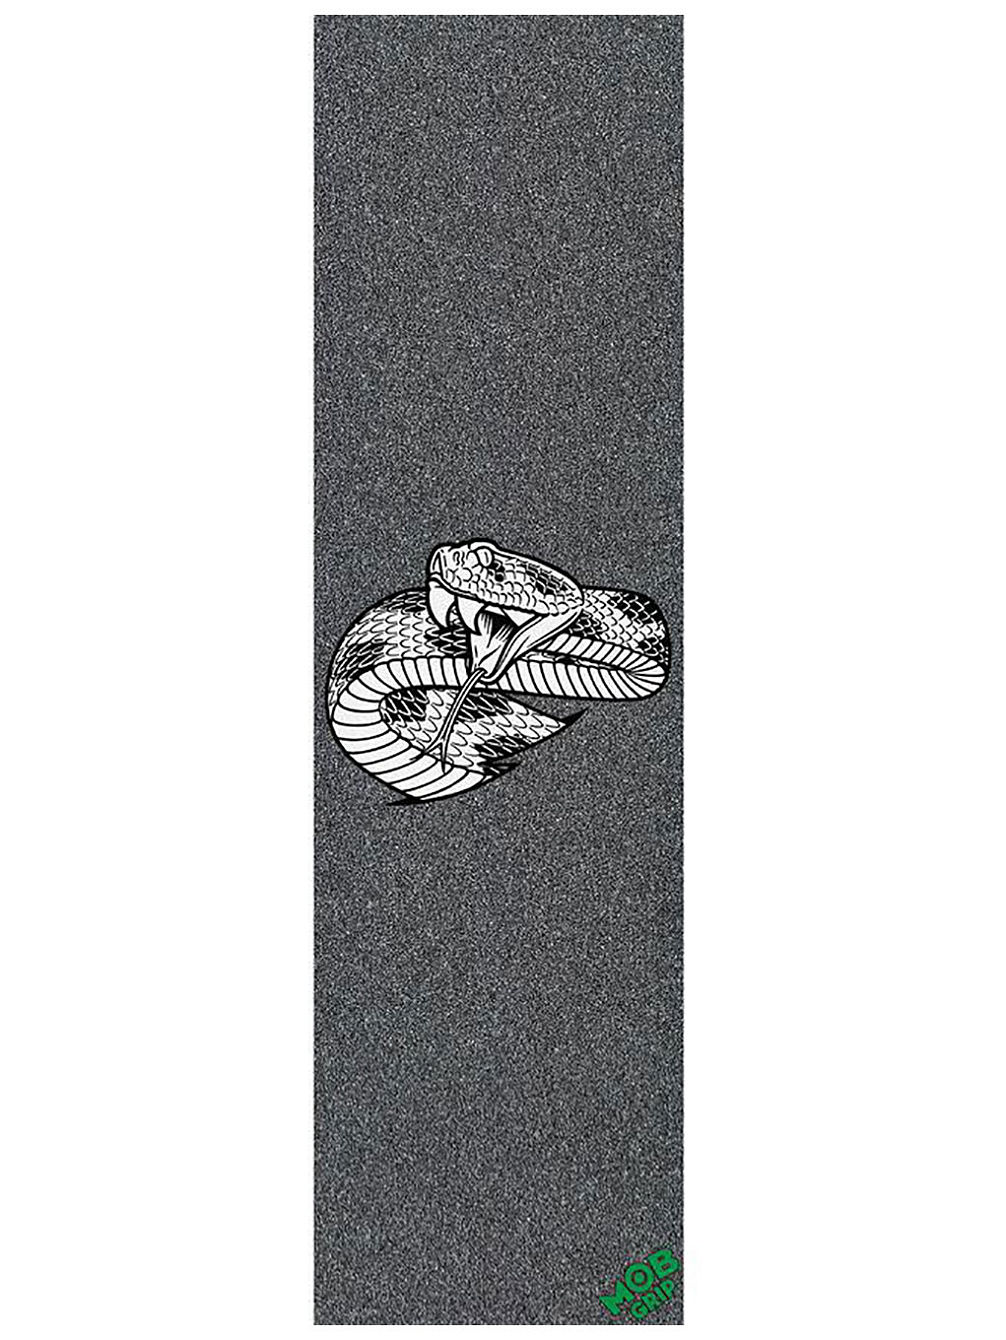 Mike Giant Two Griptape